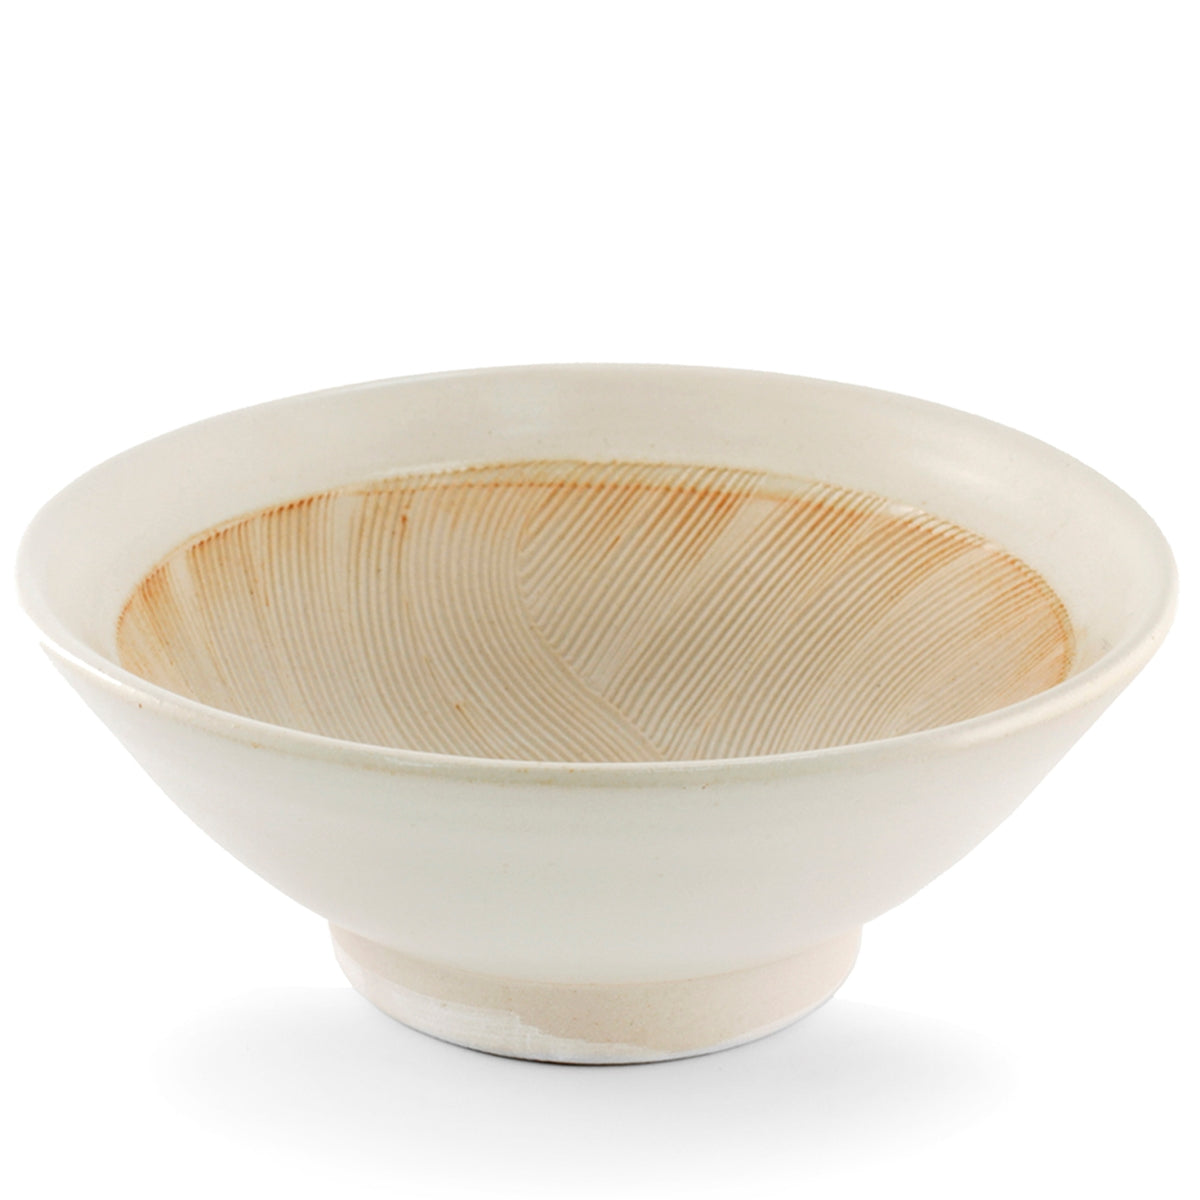 "Ivory Large Bowl with Japanese-style Mortar (Suribachi) 80 fl oz / 9.96"" dia"